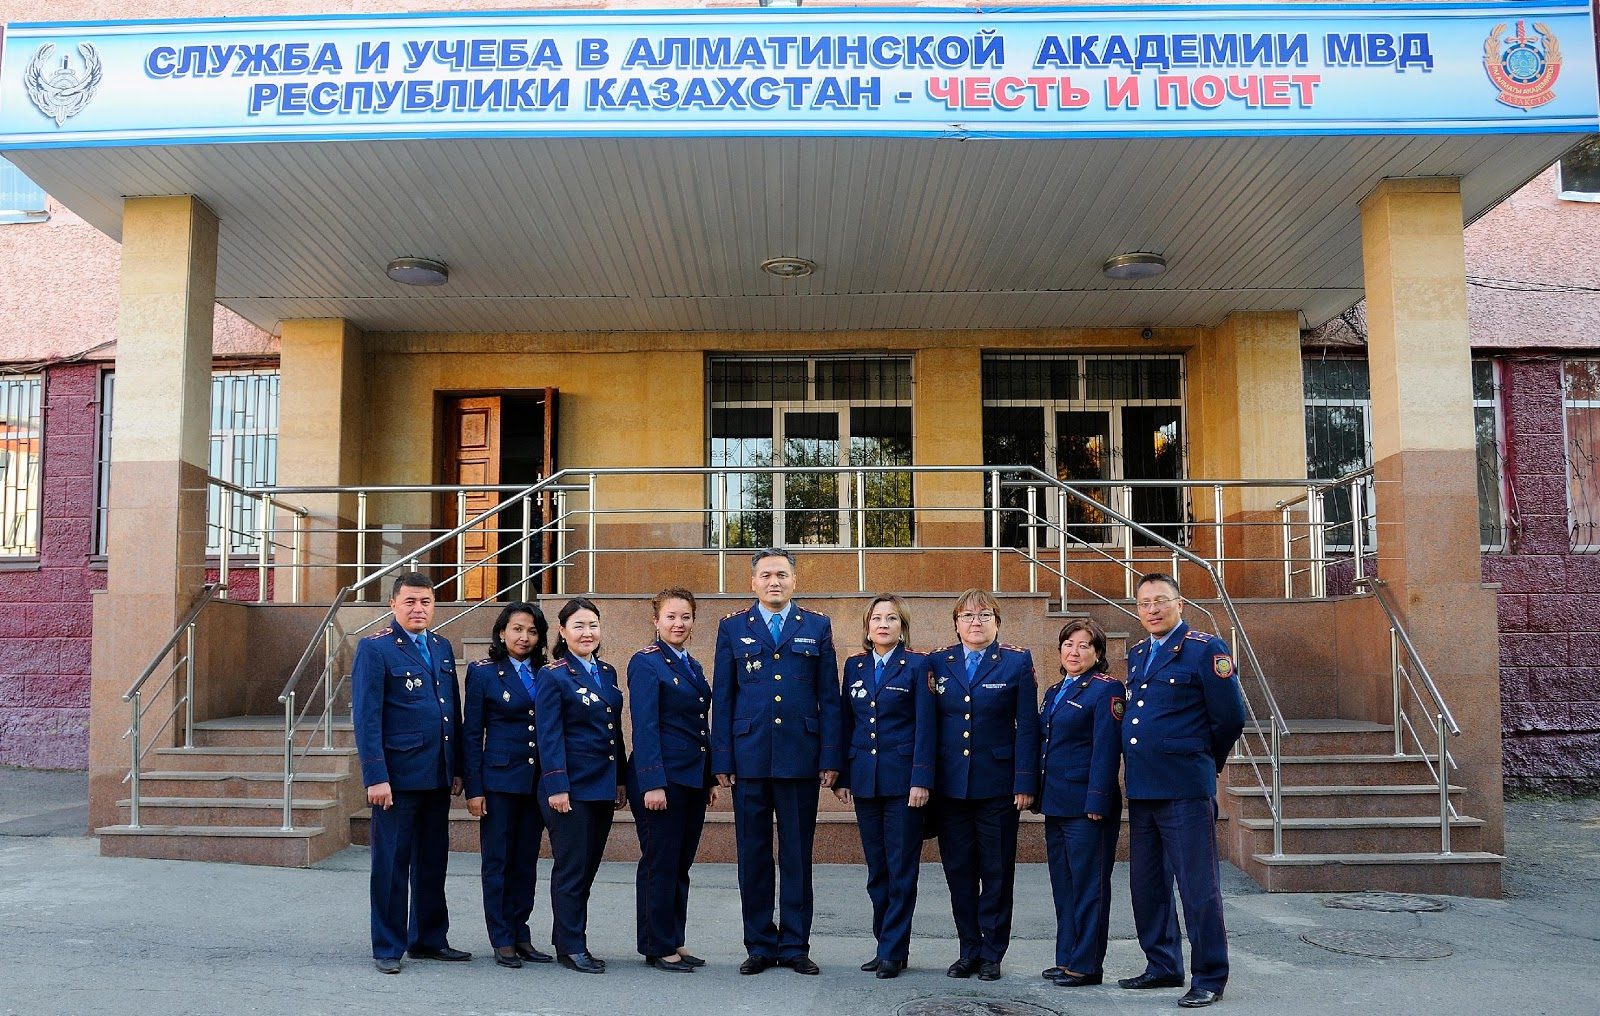 Almaty Academy of the Ministry of Internal Affairs of Kazakhstan